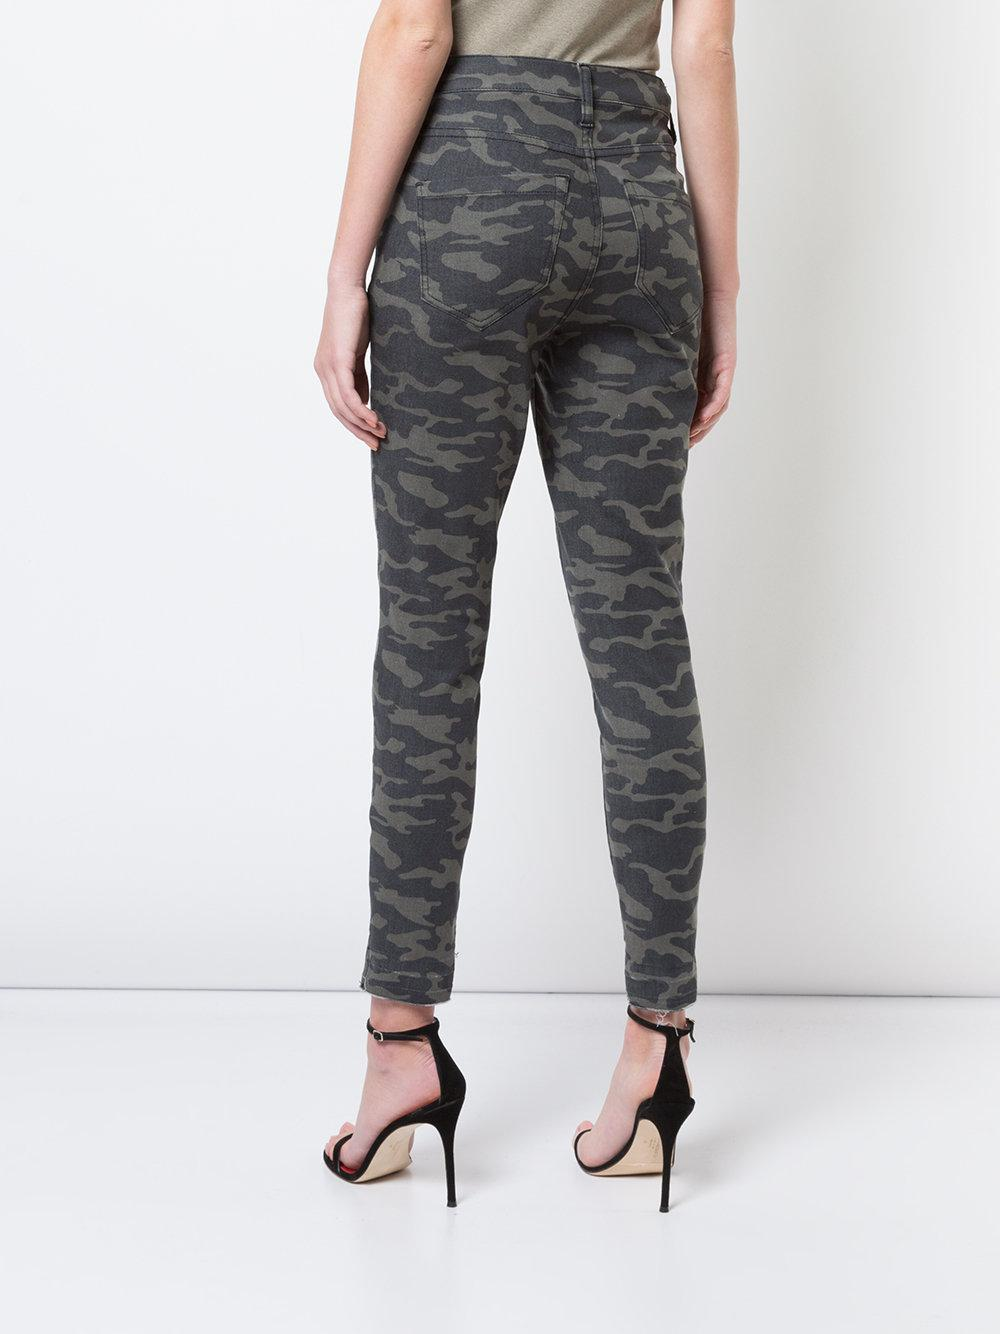 camouflage print jeans - Grey Nicole Miller OggkeuOq